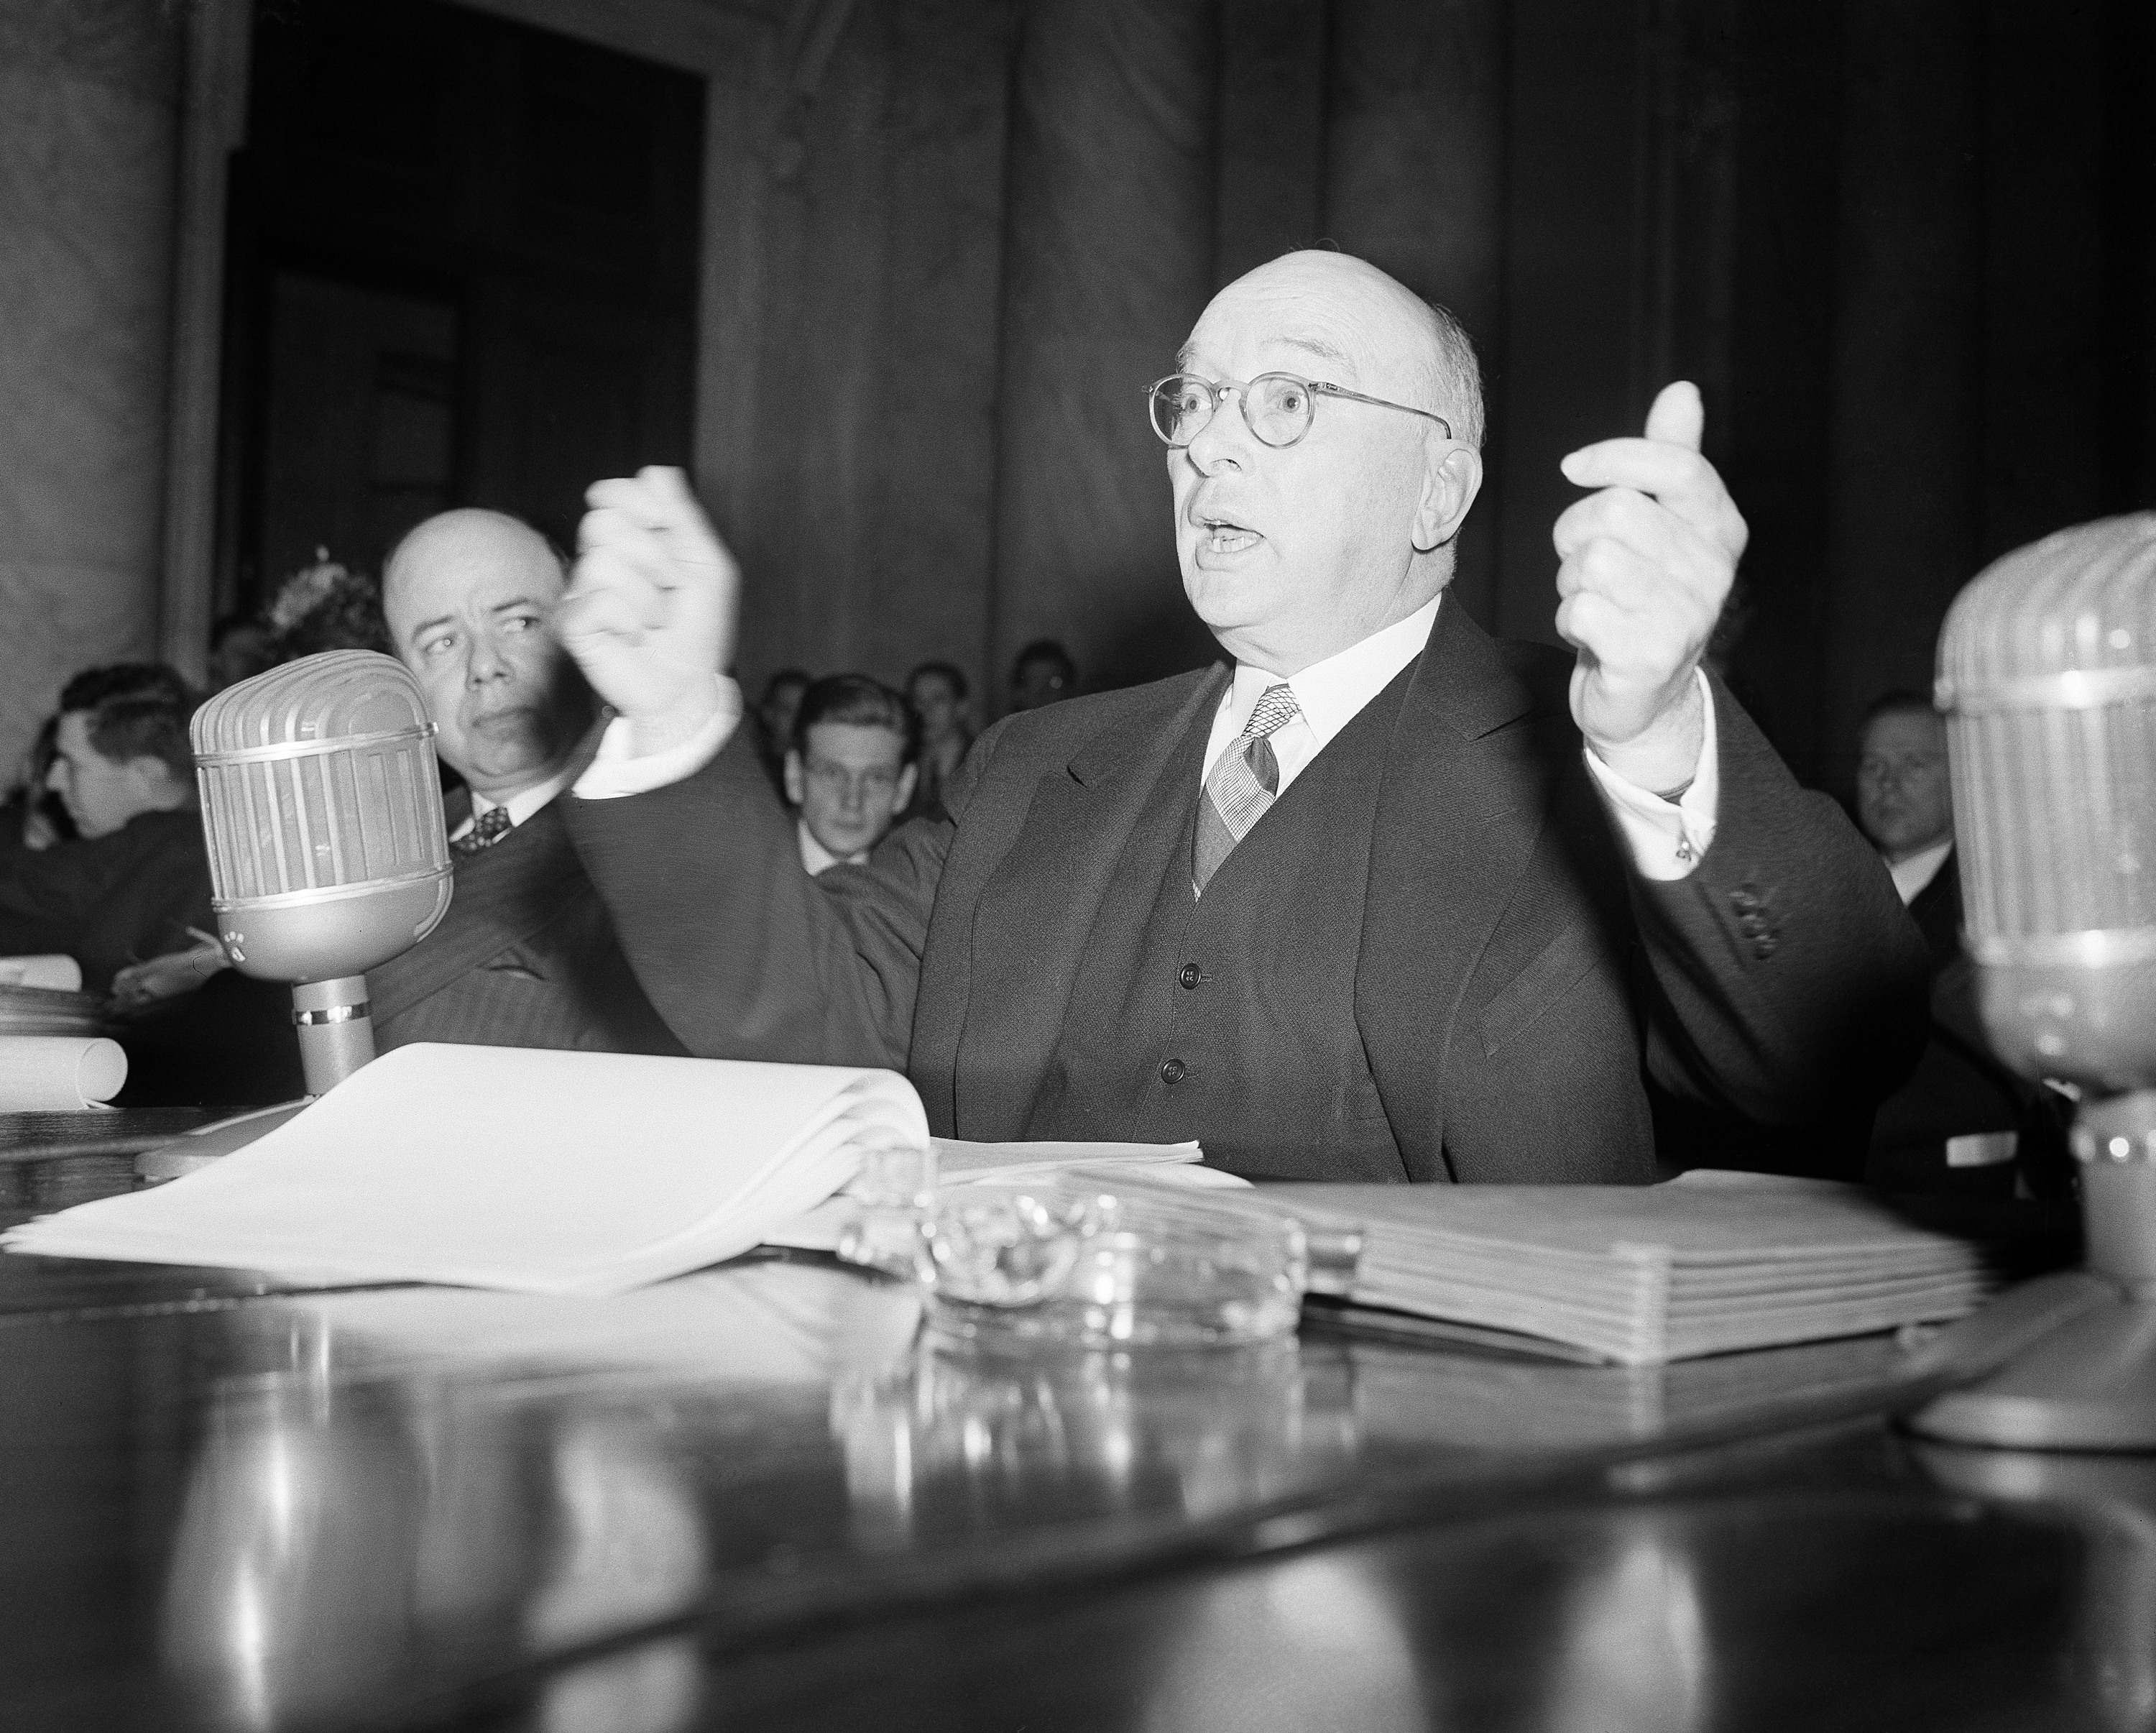 W. S. Farish, President of Standard Oil (New Jersey), hears charges from the senate defense investigating committee in Washington, March 31, 1942, that the company frustrated synthetic rubber development in the United States through agreements with a German firm. (AP Photo)